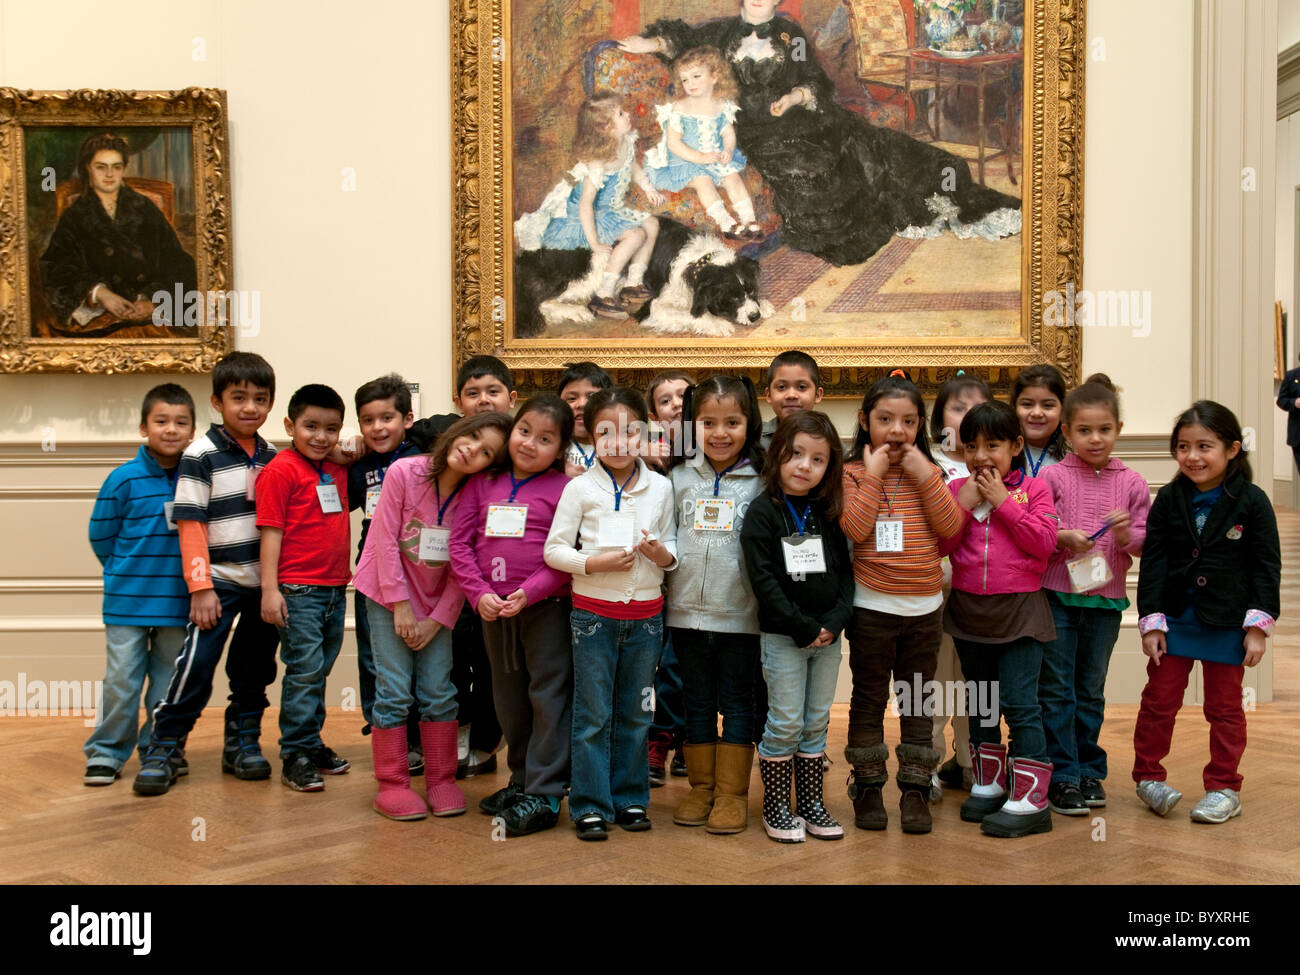 Metropolitan Museum Of Art New York City Public Elementary School